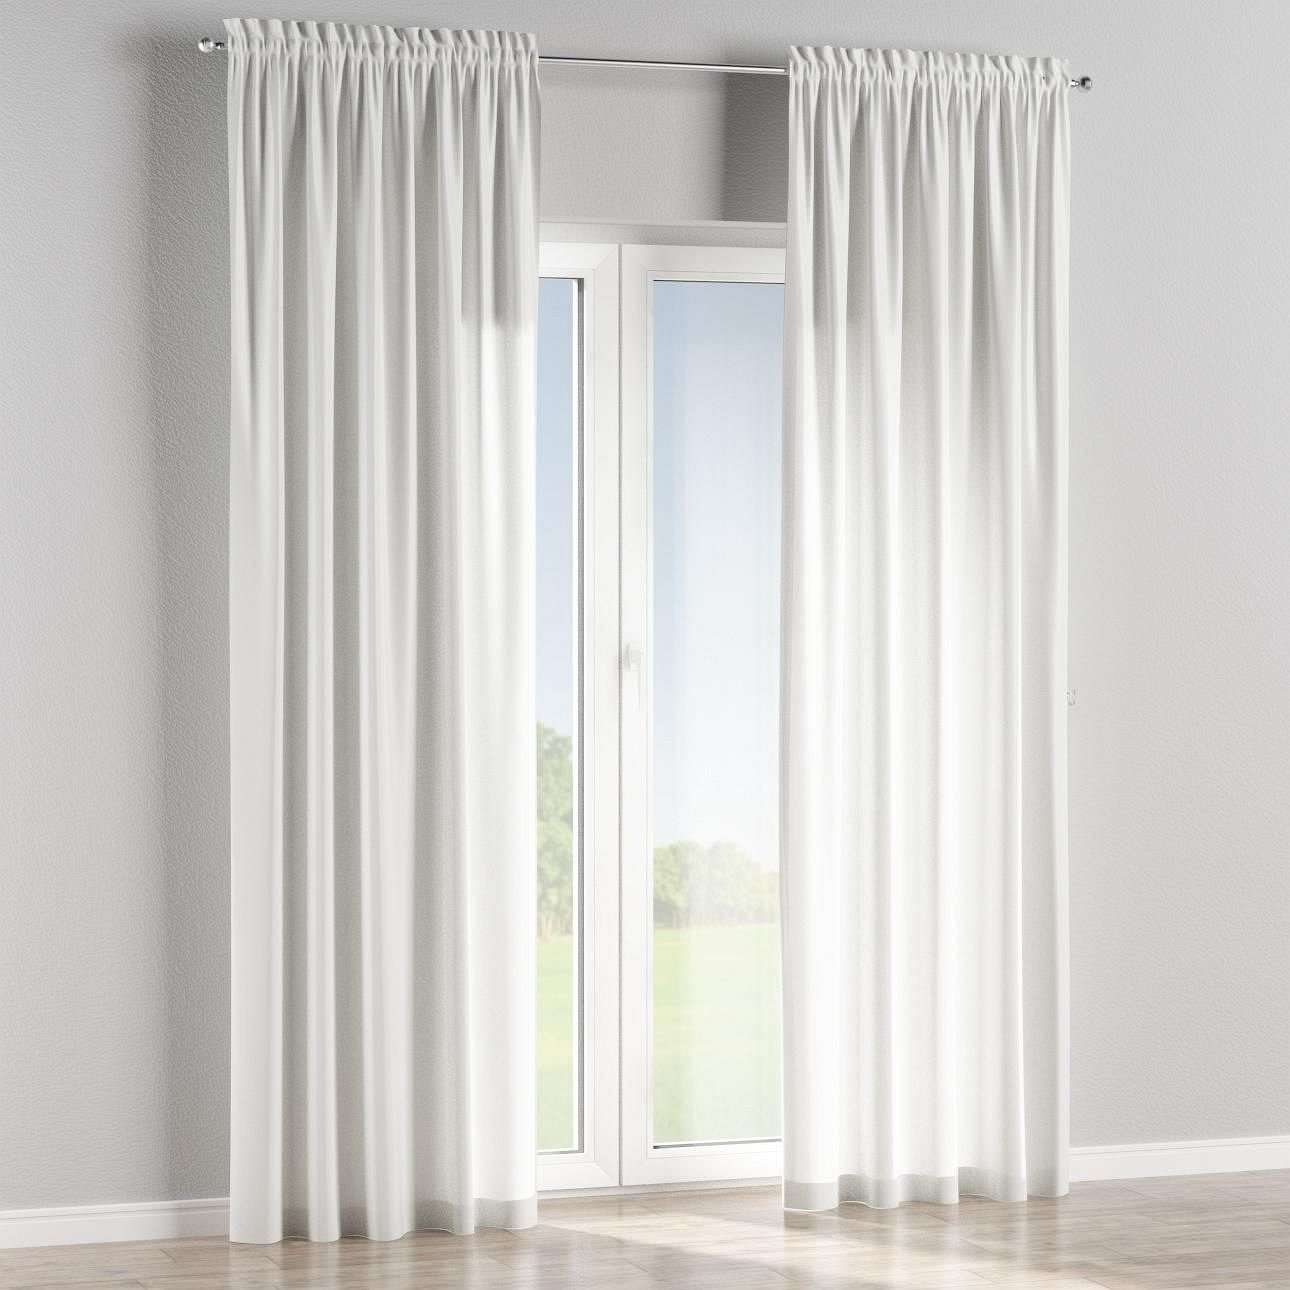 Slot and frill curtains in collection Cardiff, fabric: 136-26